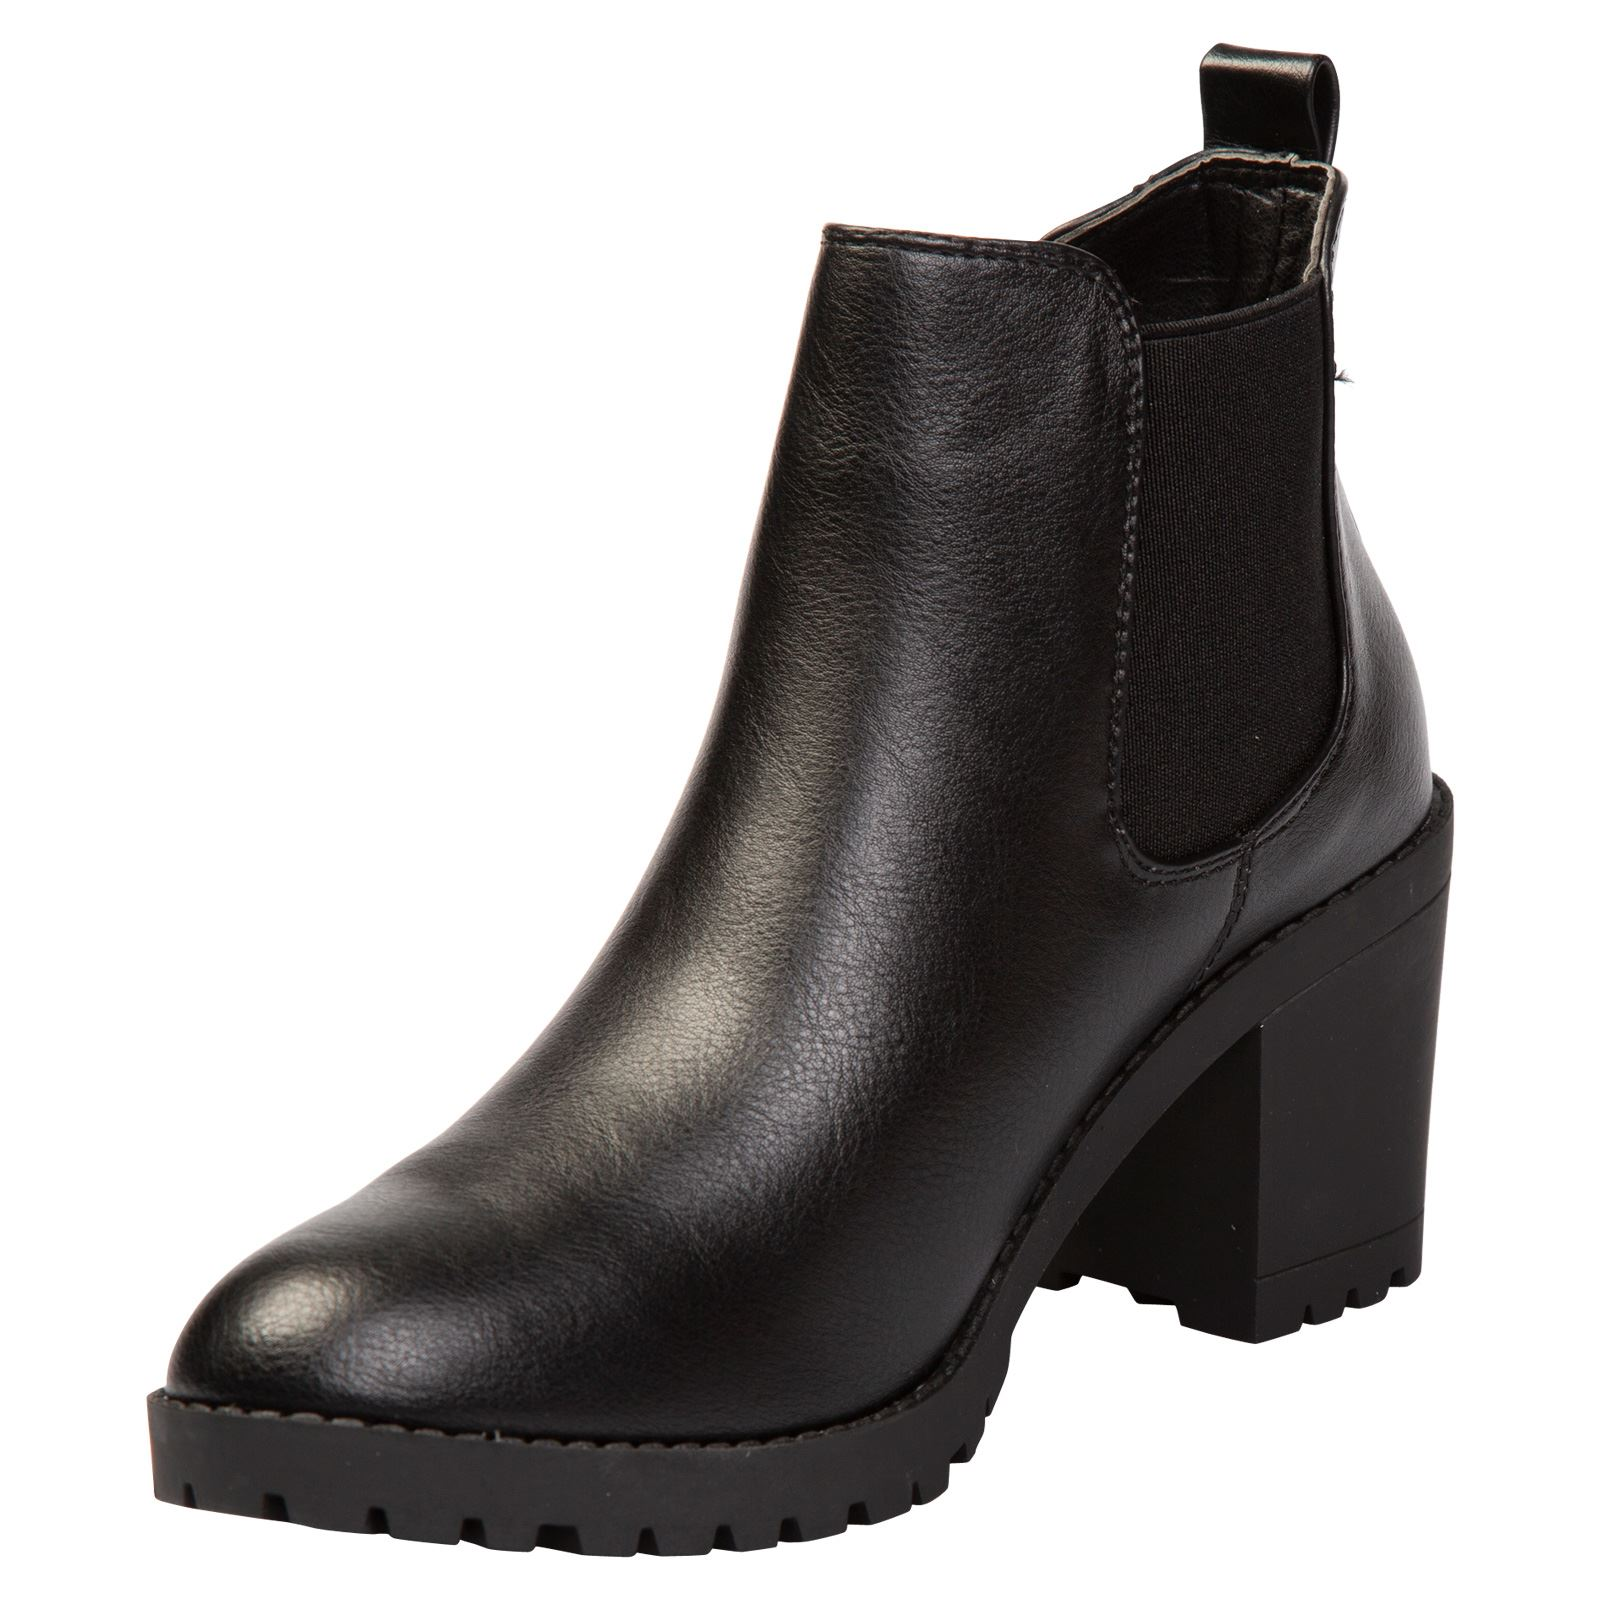 Amaya Womens Mid Block Heel Pull On Chelsea Style Boots Ladies Shoes Casual Size